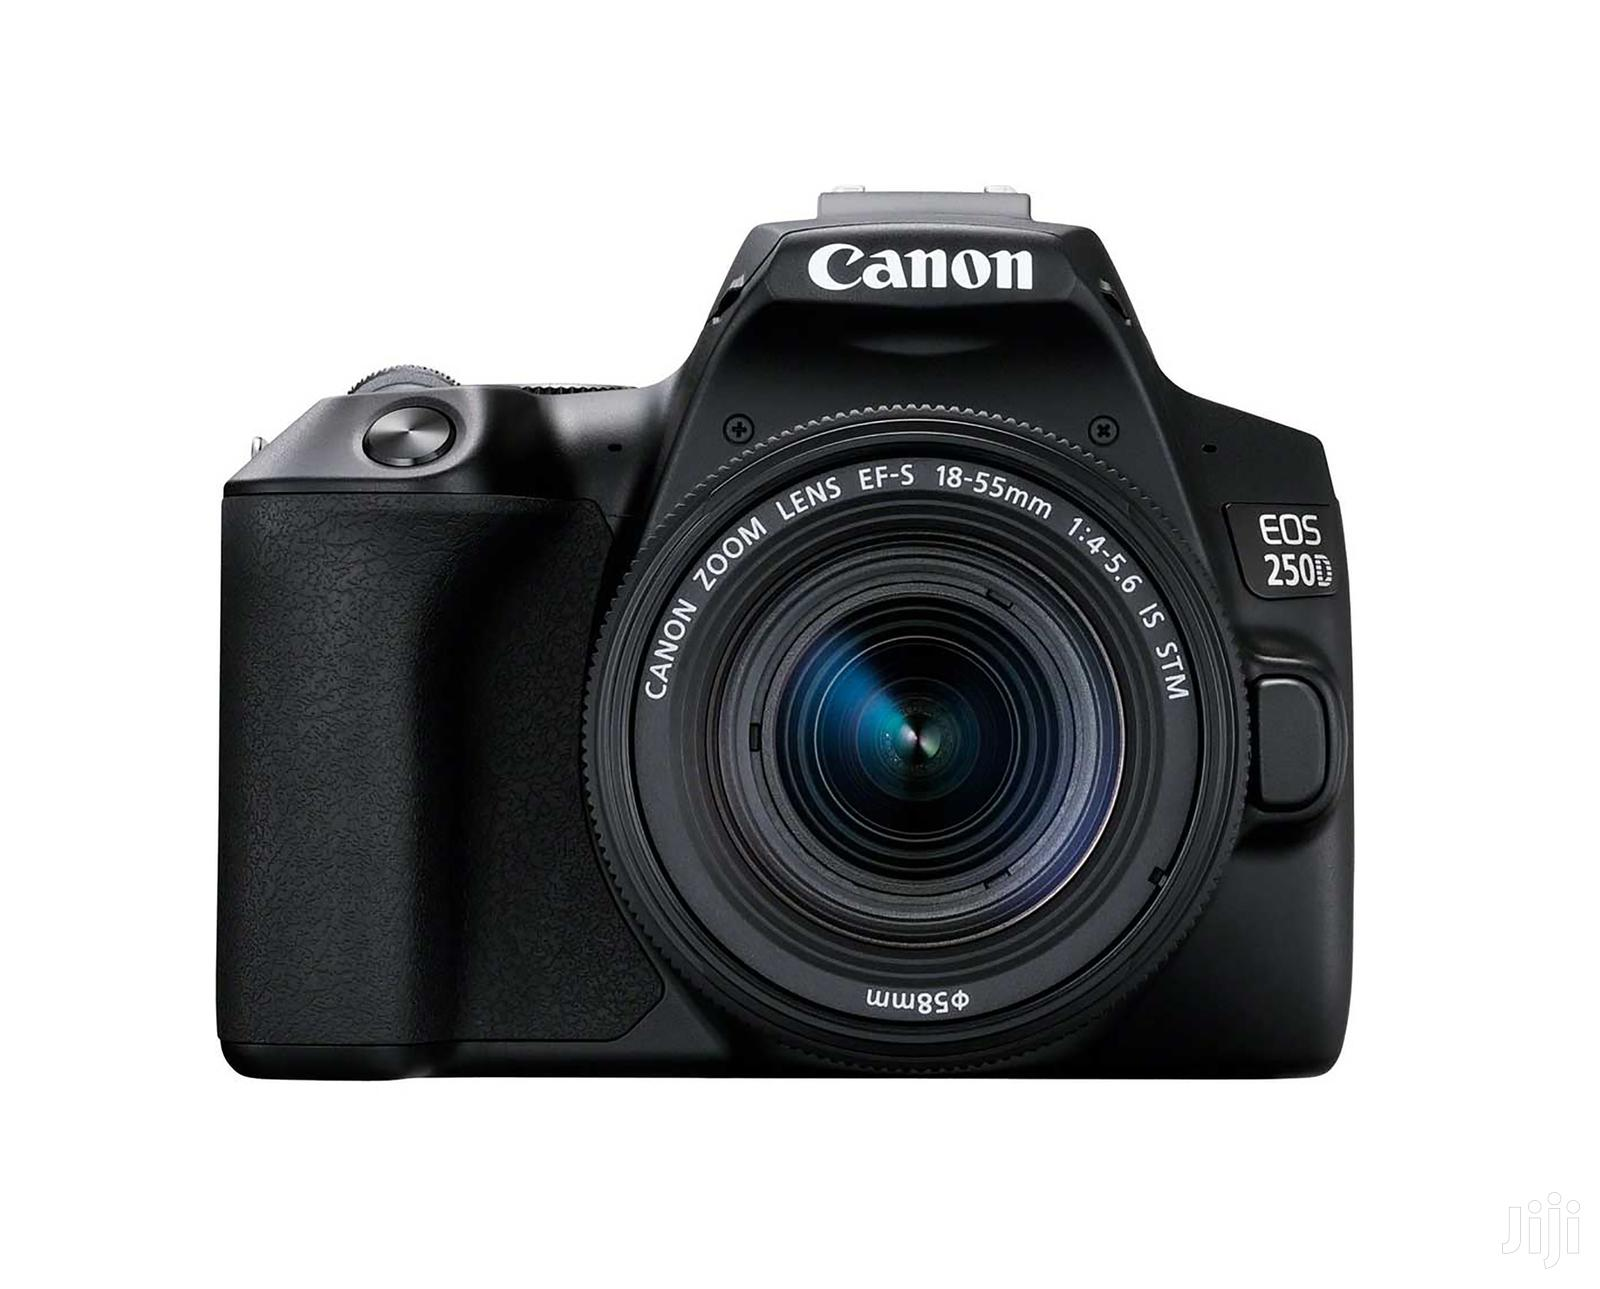 Canon EOS 250D DSLR Camera With 18-55mm Lens